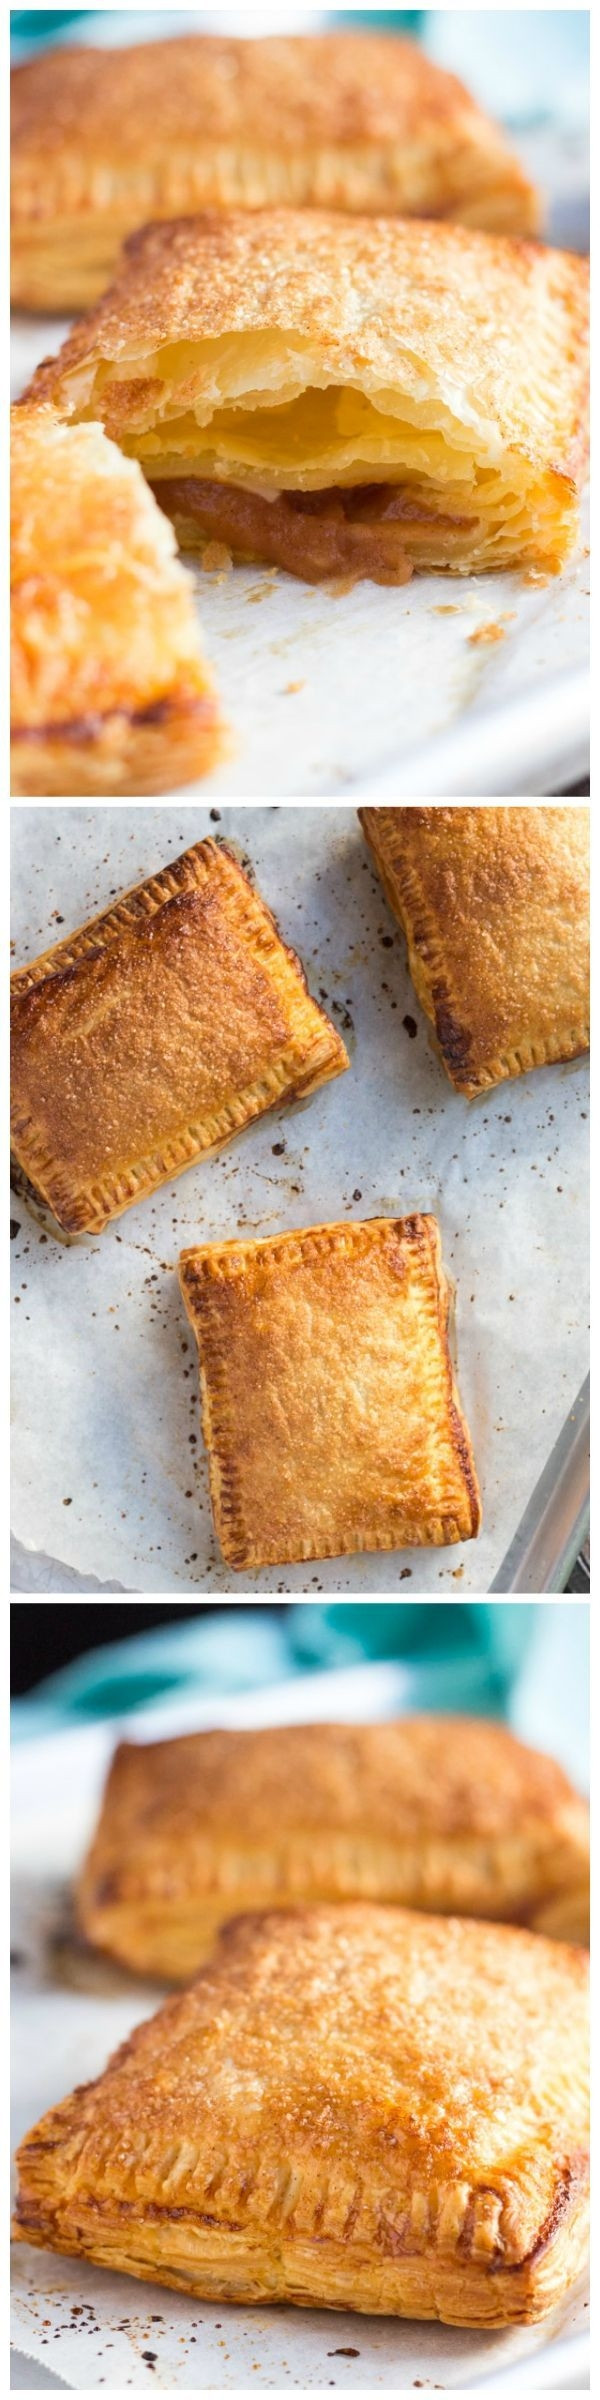 Easy Apple Dessert Recipes With Few Ingredients  Quick & Easy Apple Turnovers A simple dessert that can be